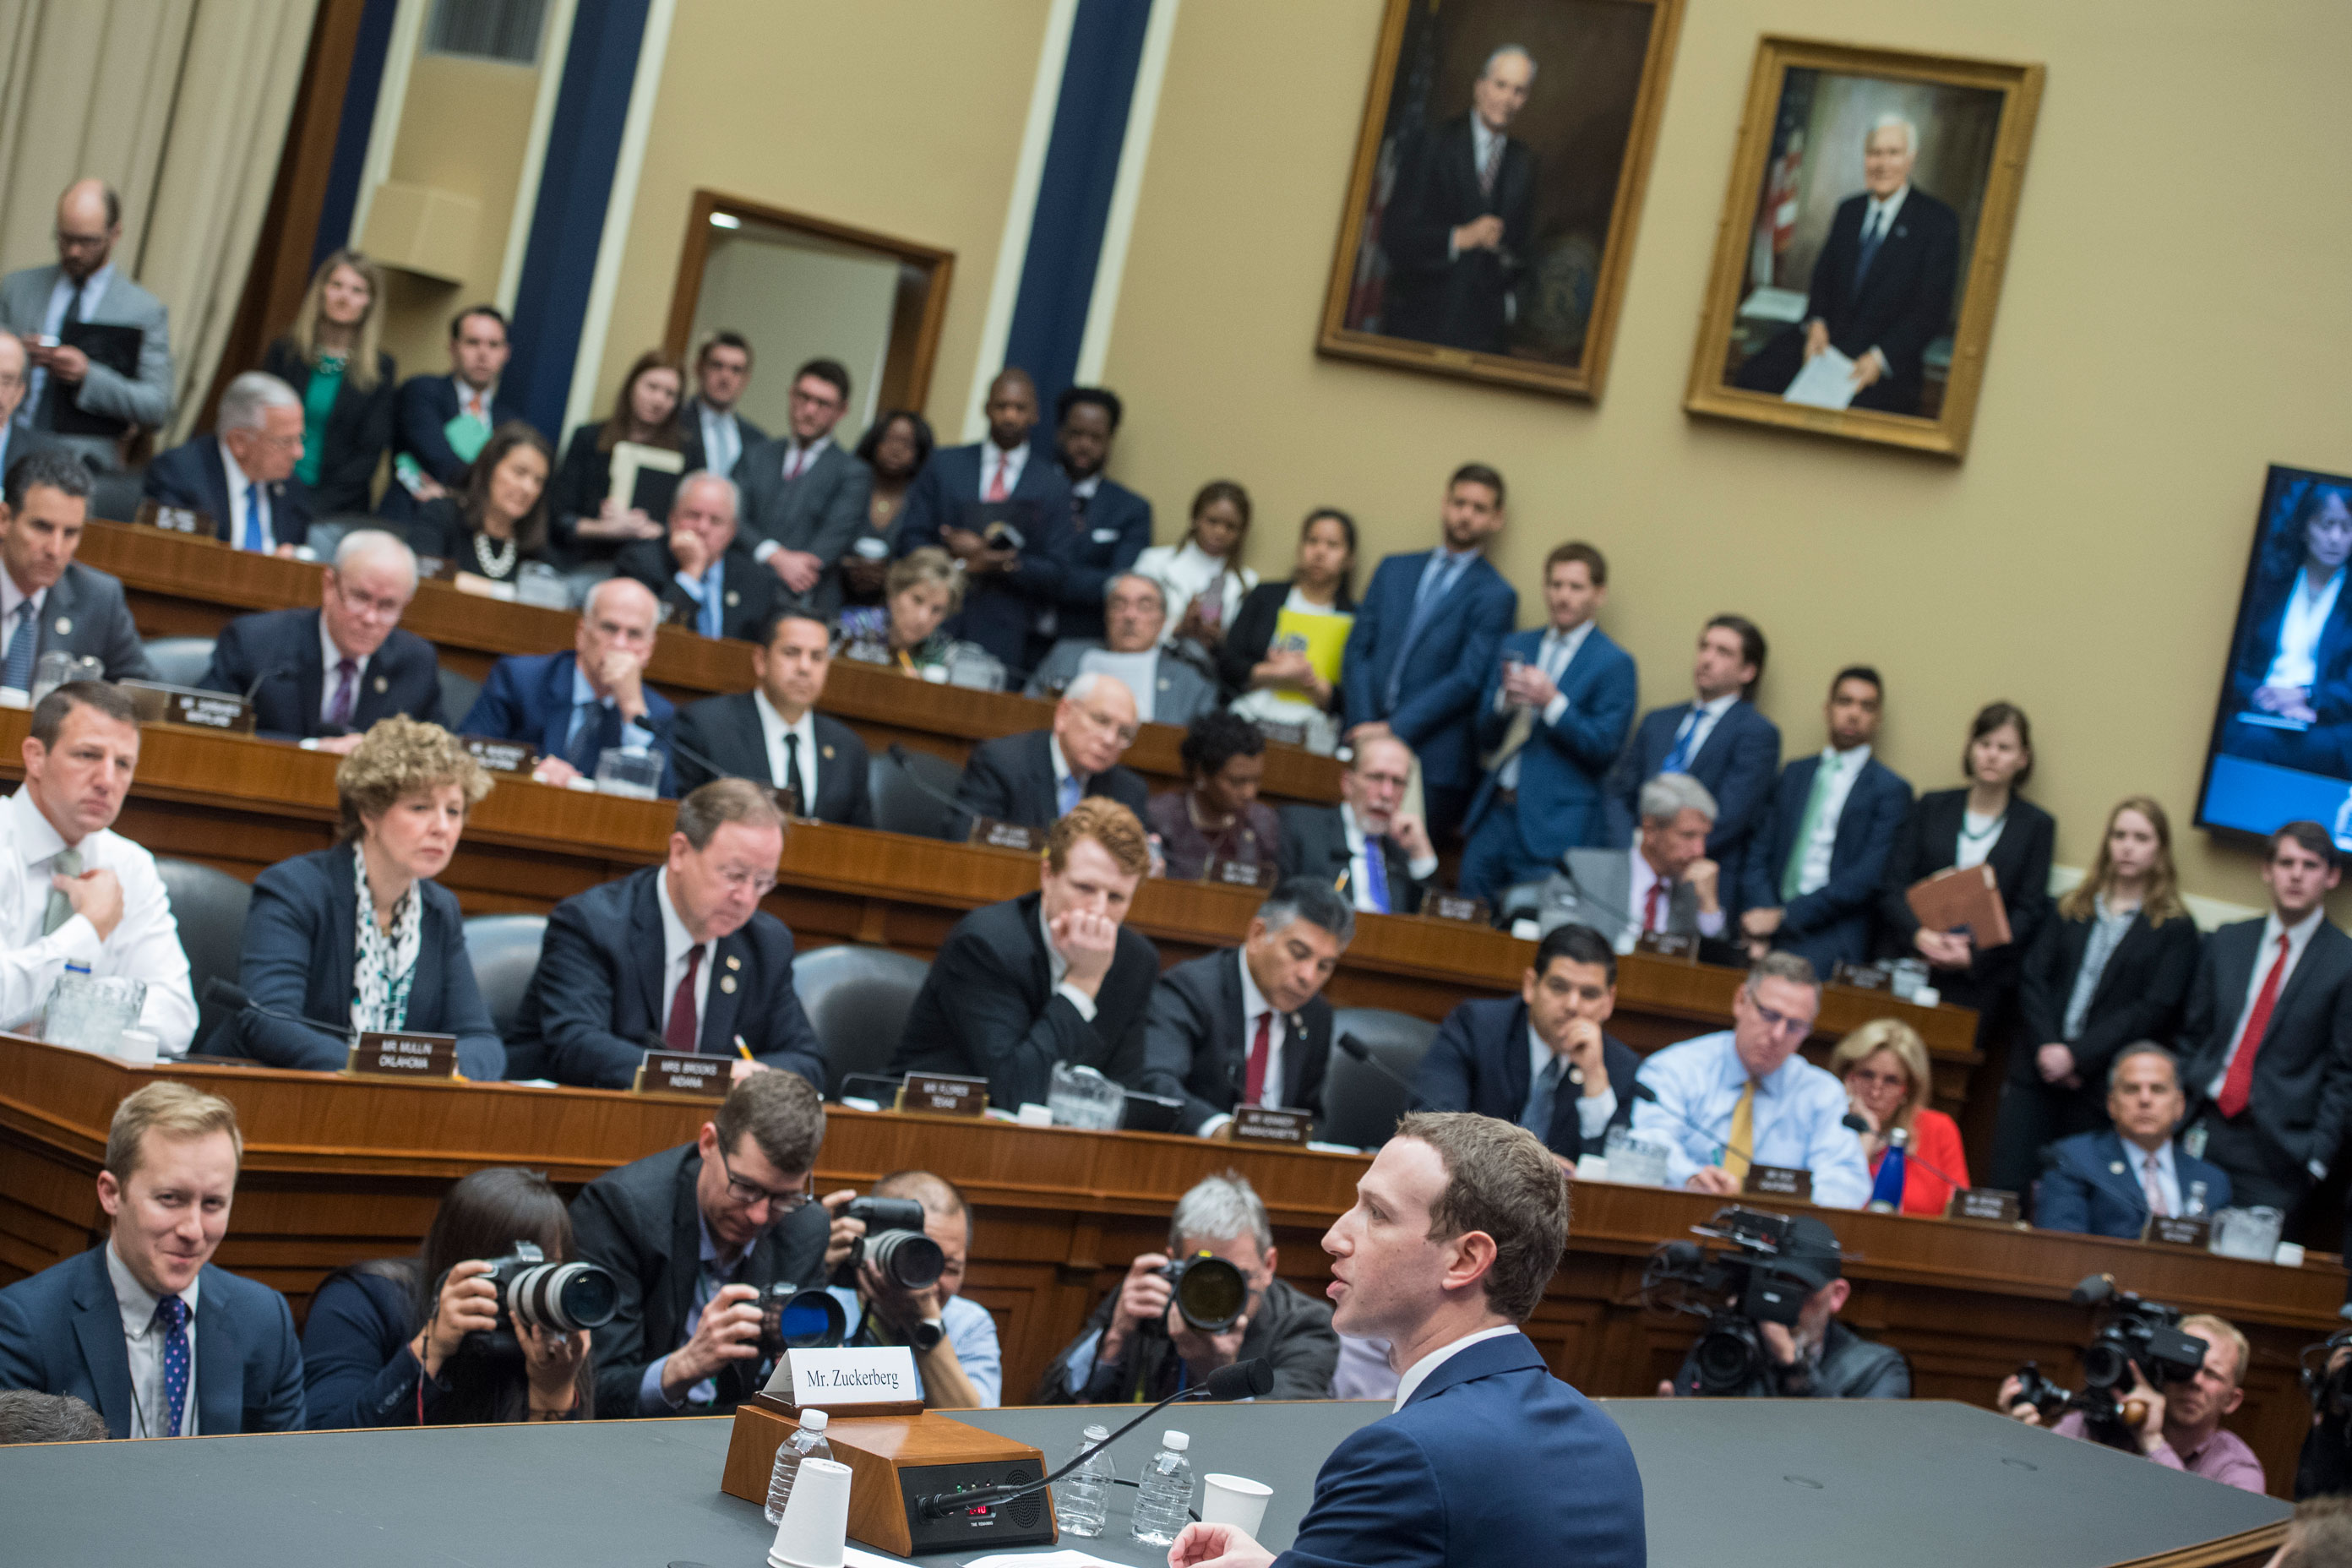 'Looks like Zuckerberg lied to Congress'